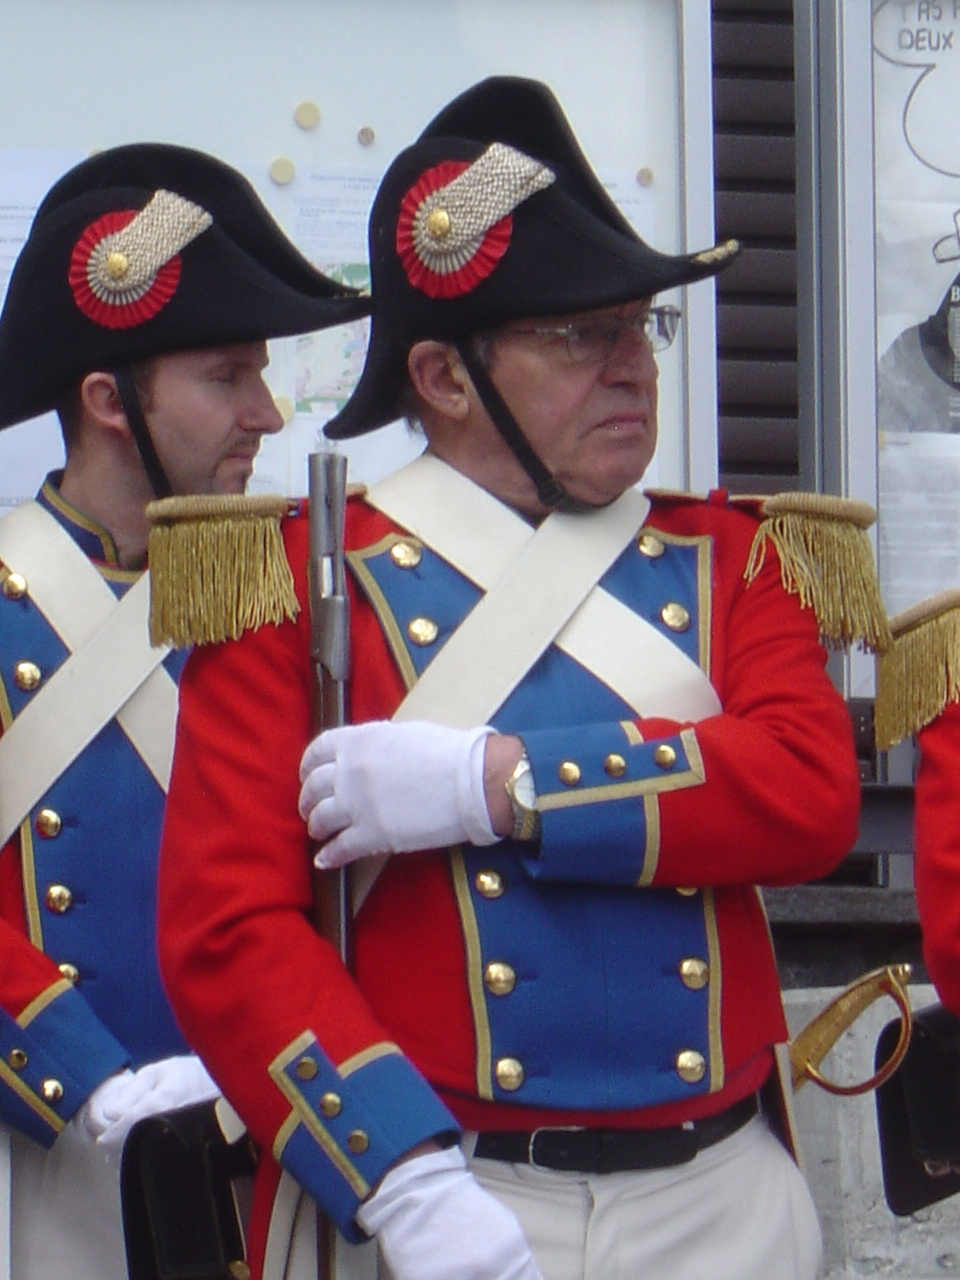 St-Georges2008_08